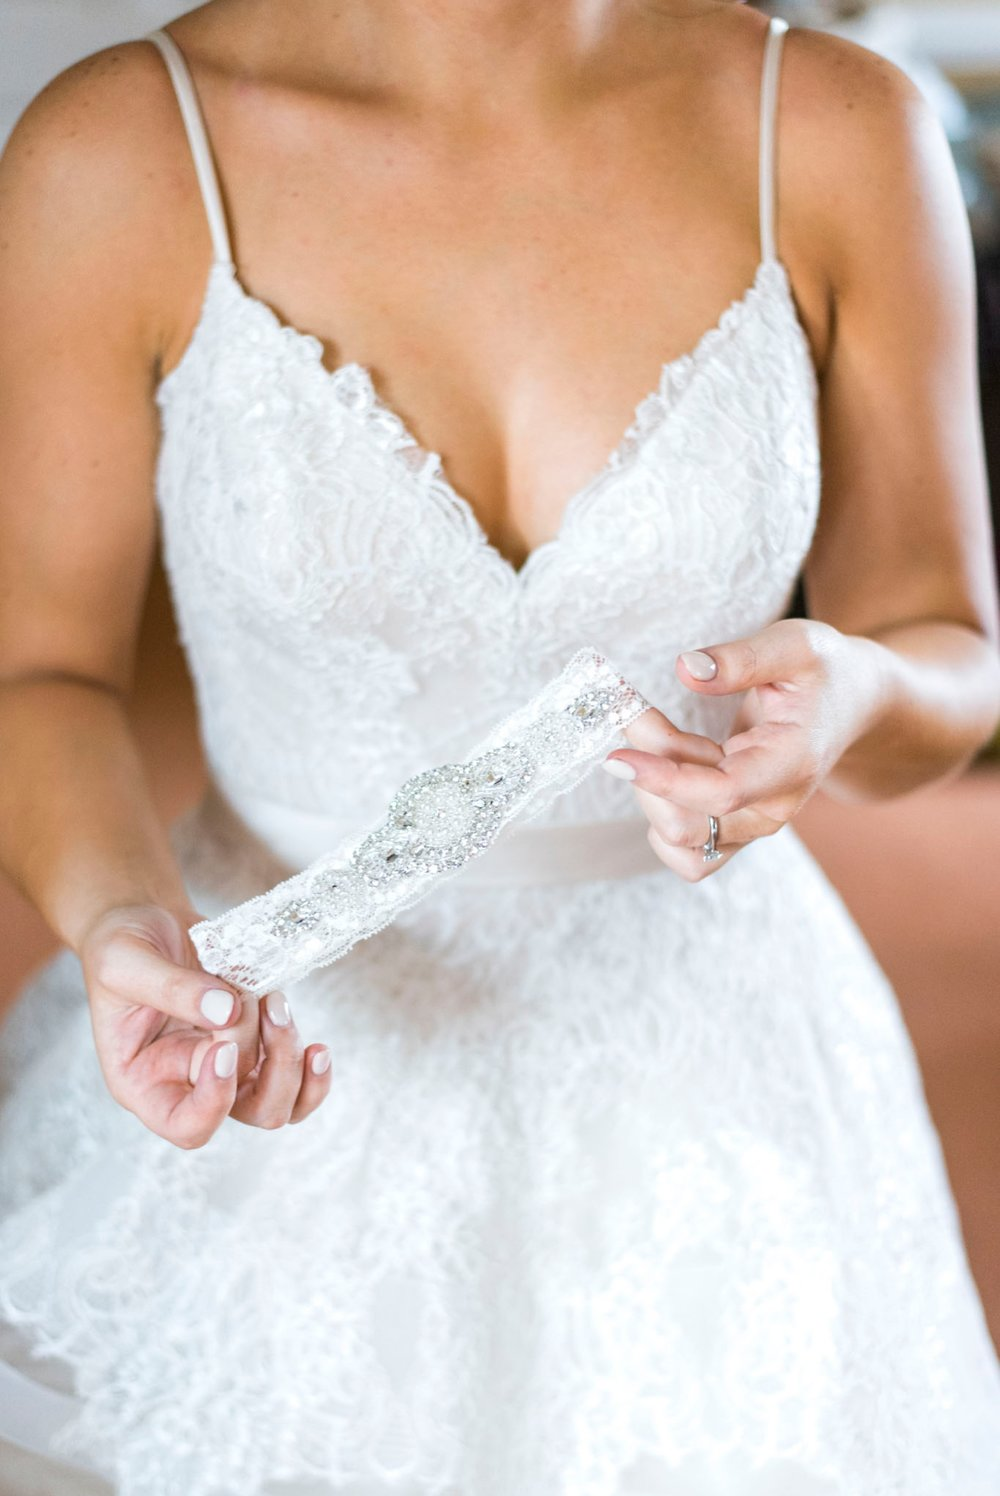 IrvineEstate_LexingtonVA_Wedding_FallWedding_VirginiaWeddingPhotographer 14.jpg